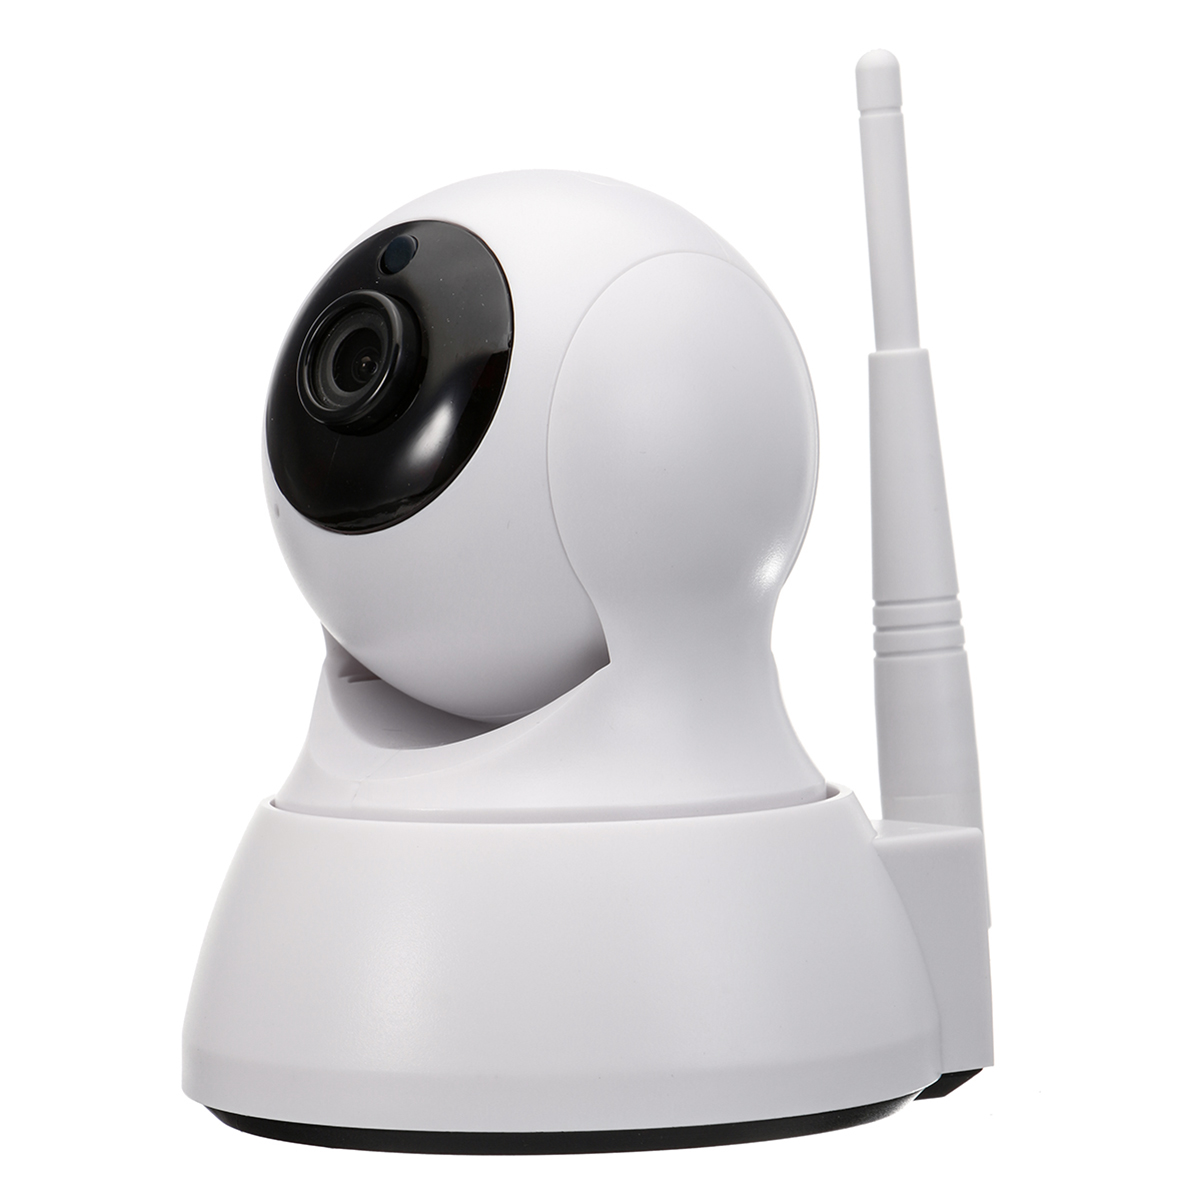 e98c1434b9a 720P Wifi IP Camera Home Security Camera 360 Degrees Panoramic Two-way Voice